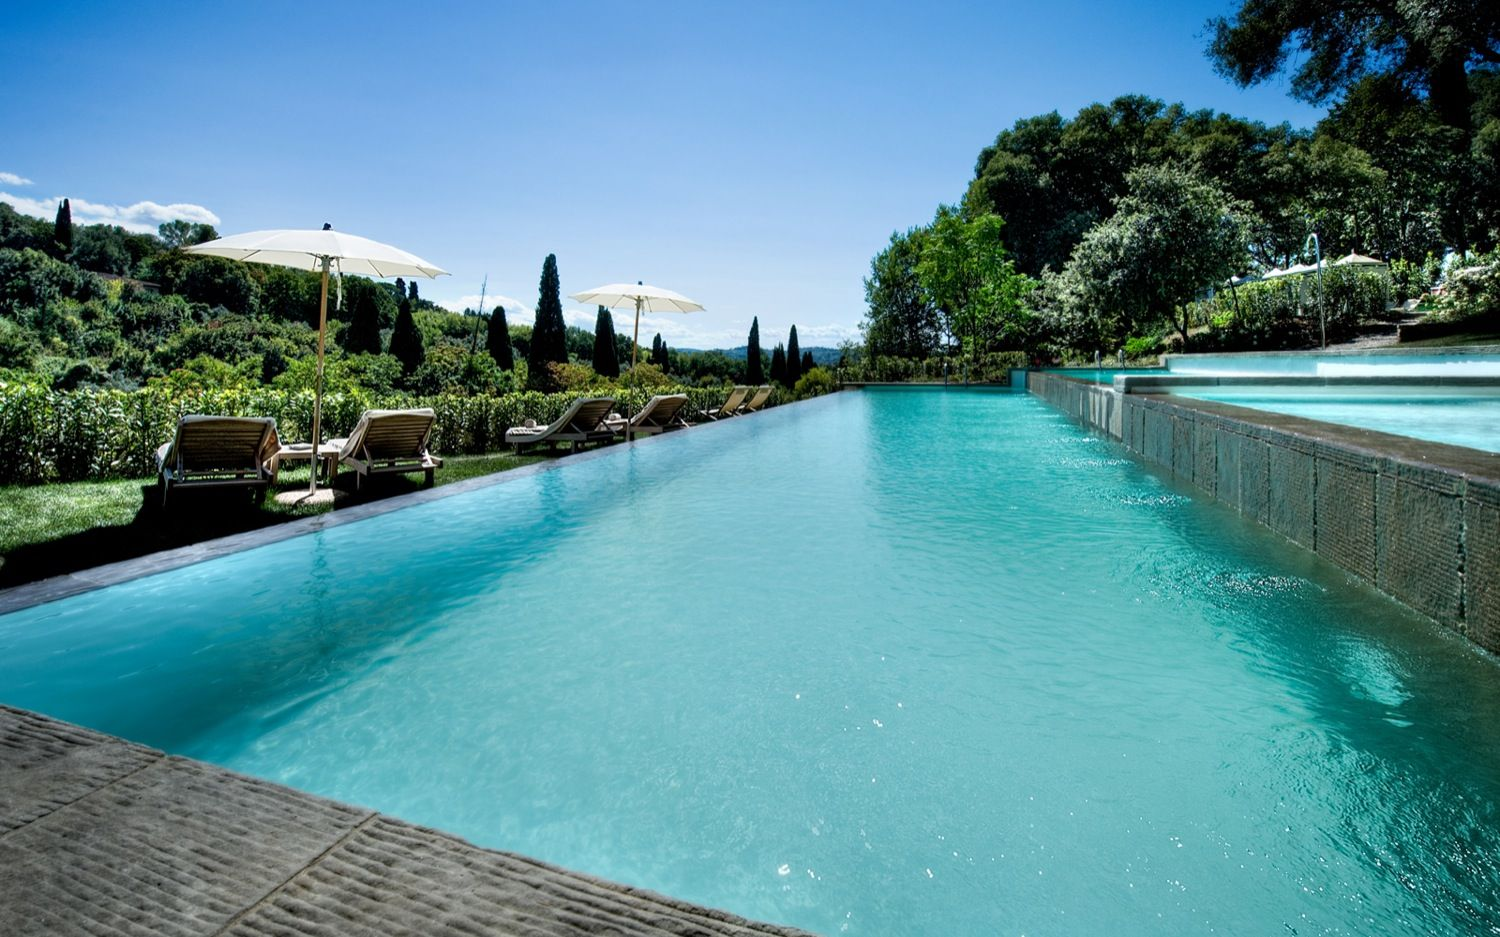 Hotel florence pool florence hotels with pools florence source - Salviatino Luxury Hotel Florence